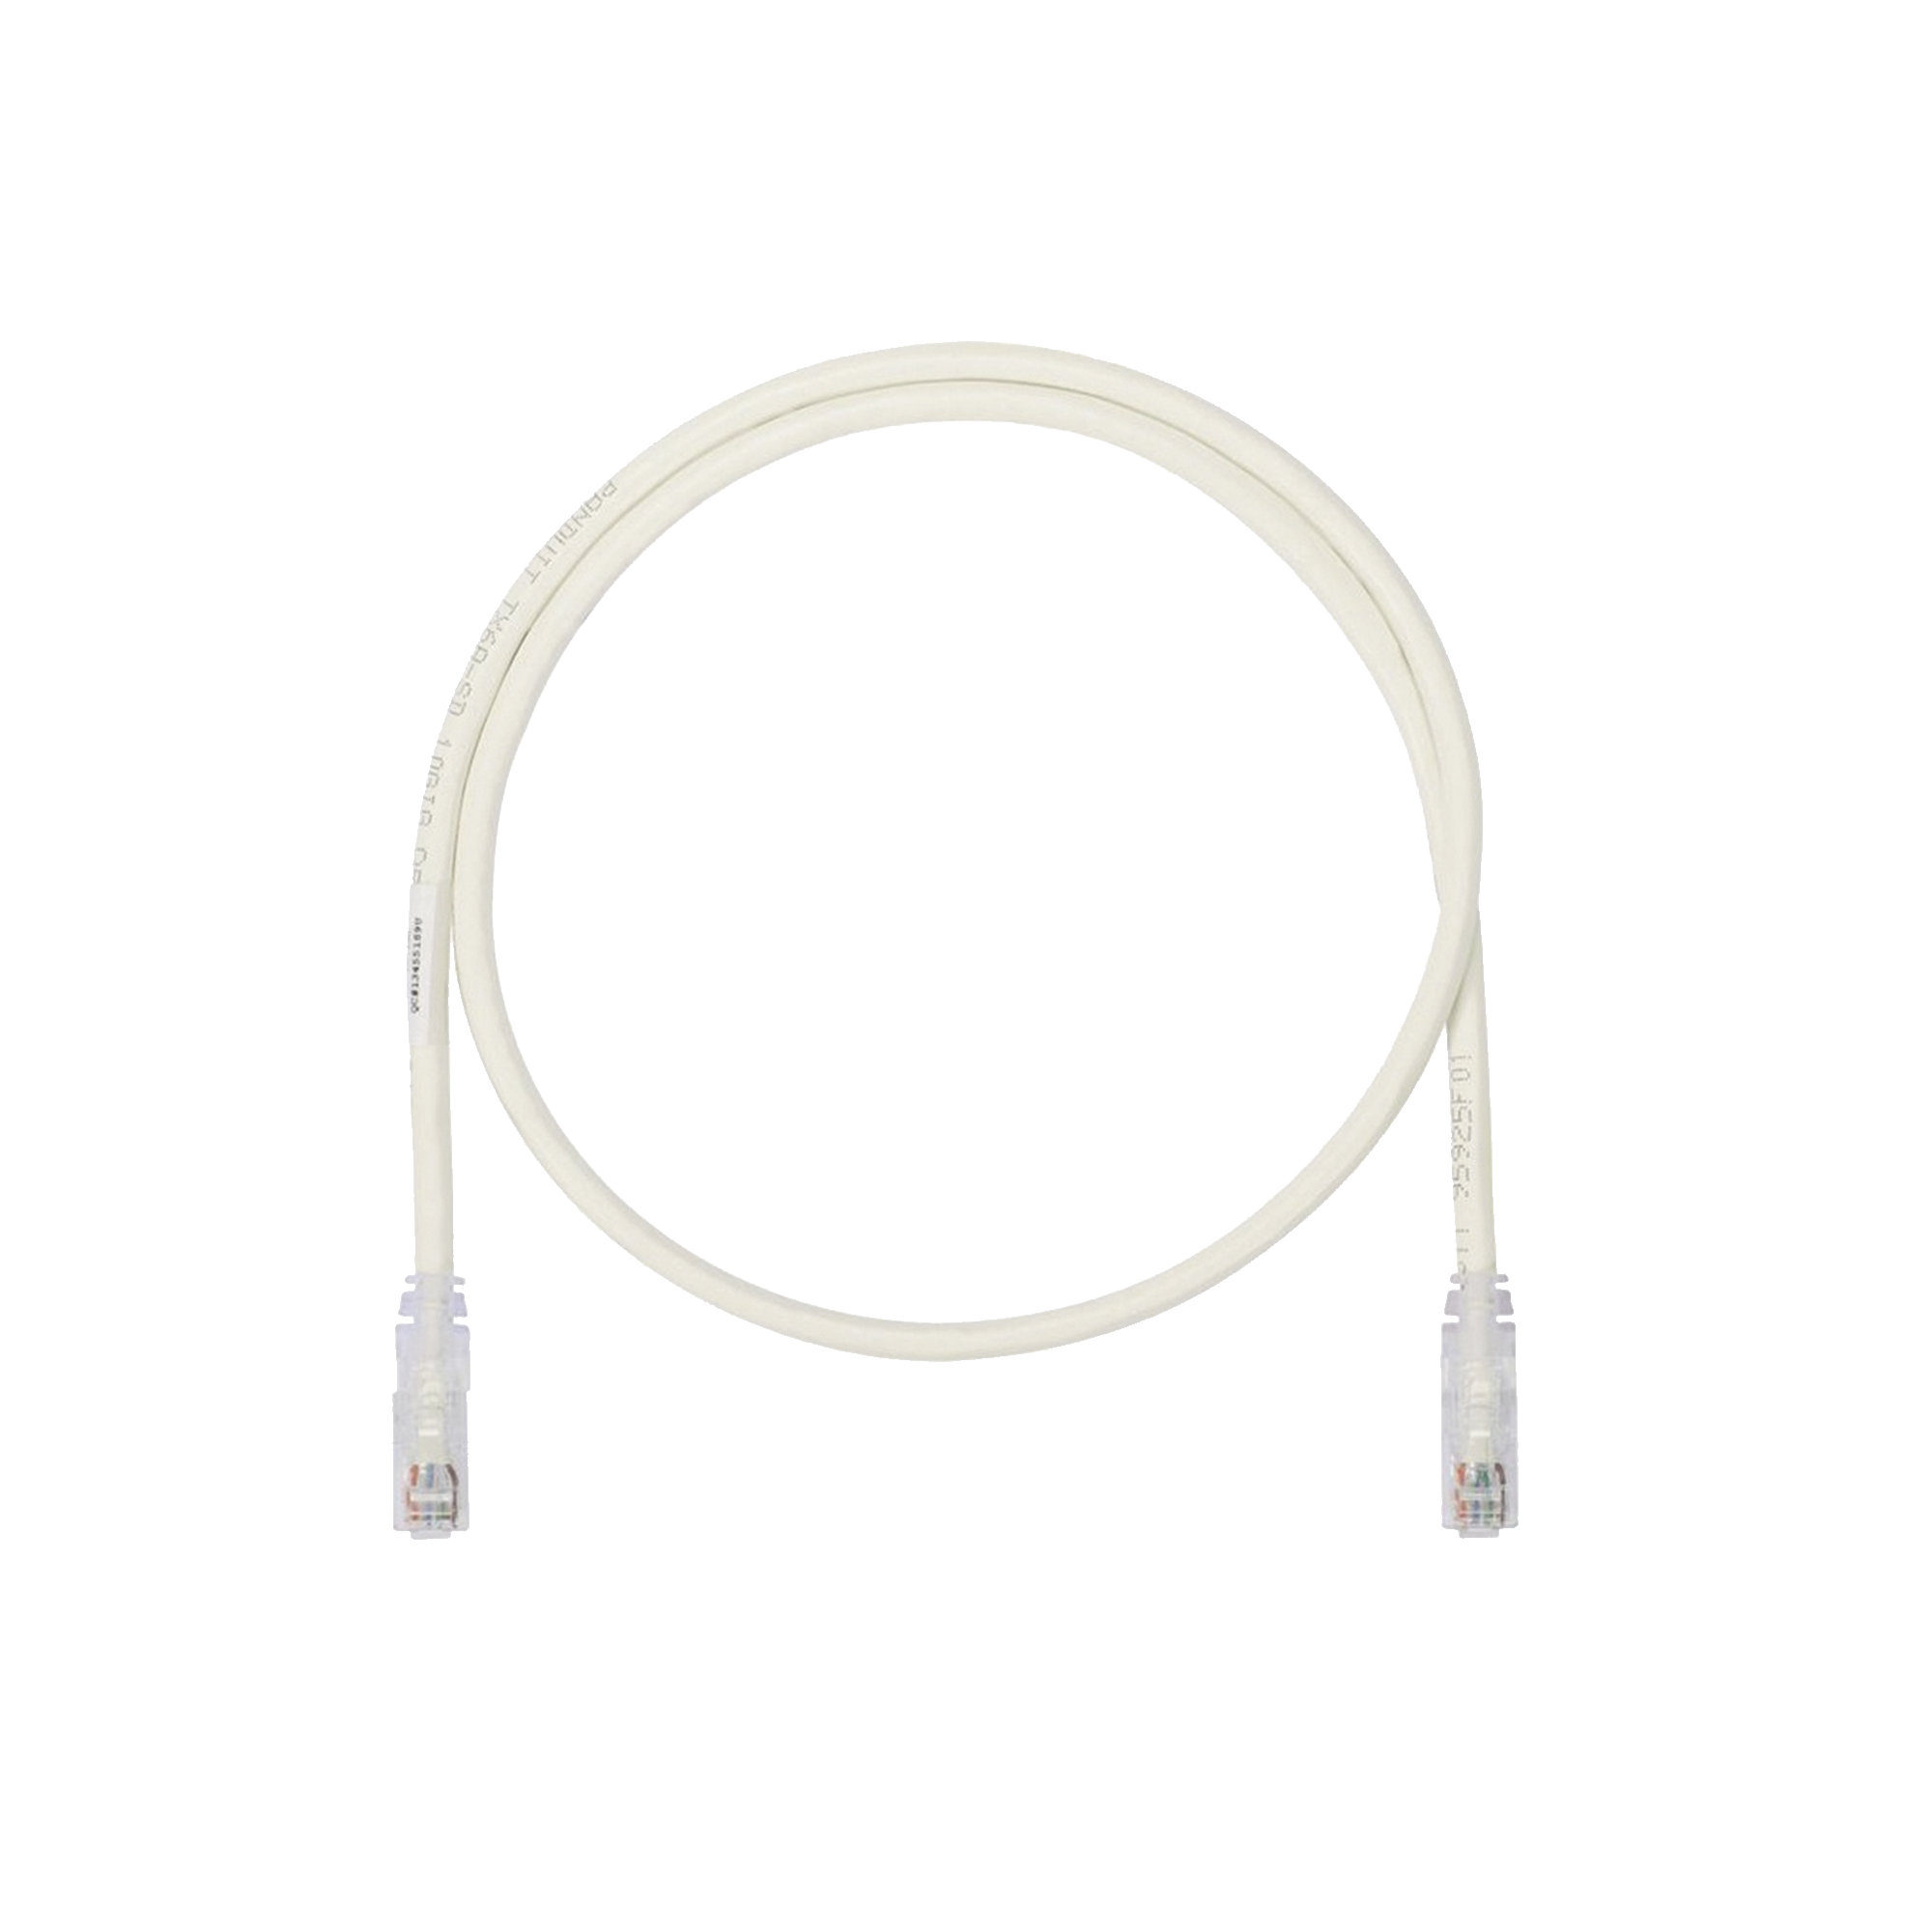 Cable de Parcheo UTP, Cat6A, 26 AWG, CM, Color Blanco Mate, 7ft